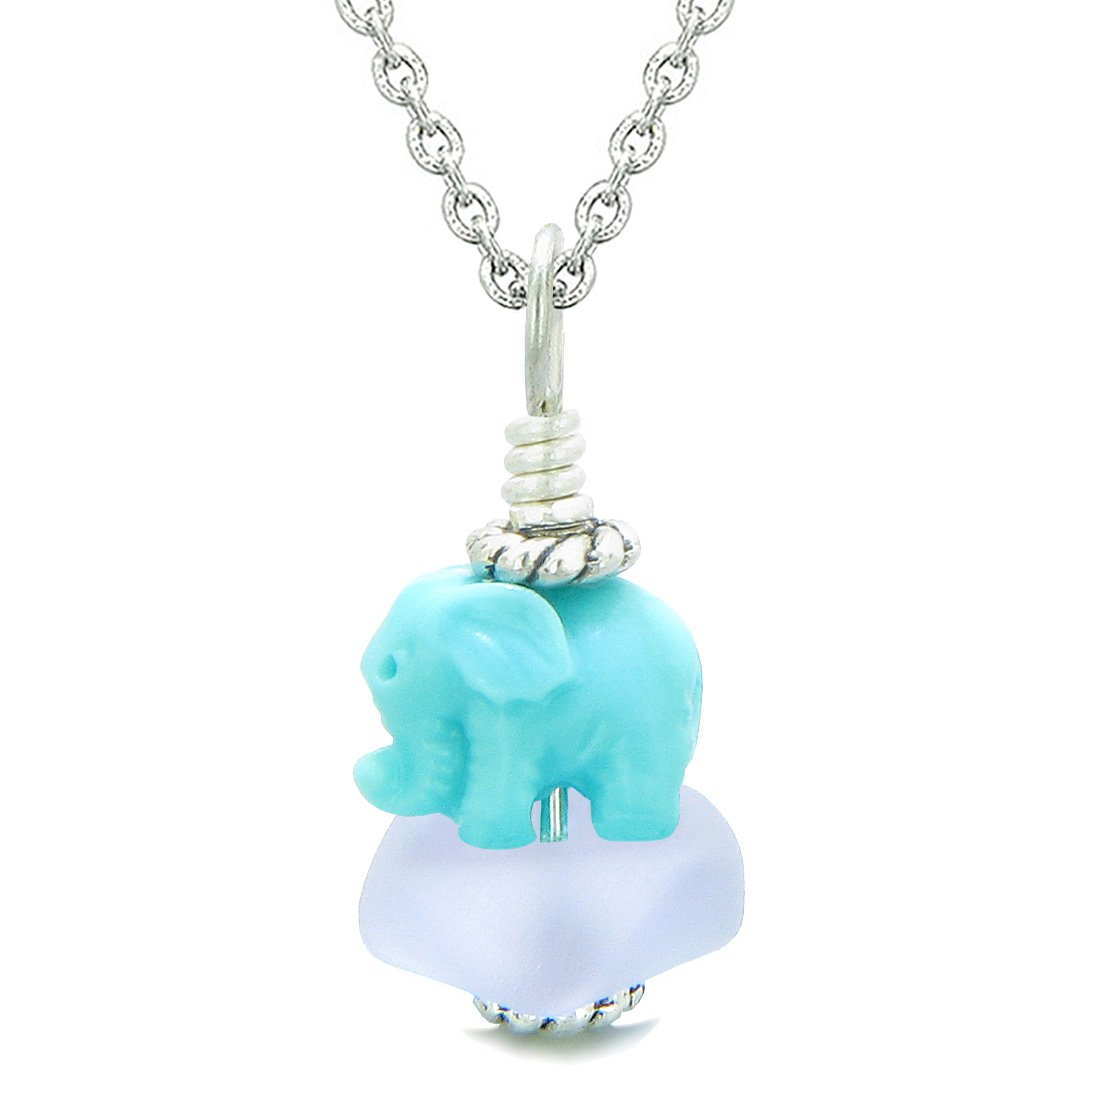 Sea Glass Pastel Purple Frosted Cloud Celeste Elephant Lucky Charm Magic Amulet Pendant 18 Inch Necklace